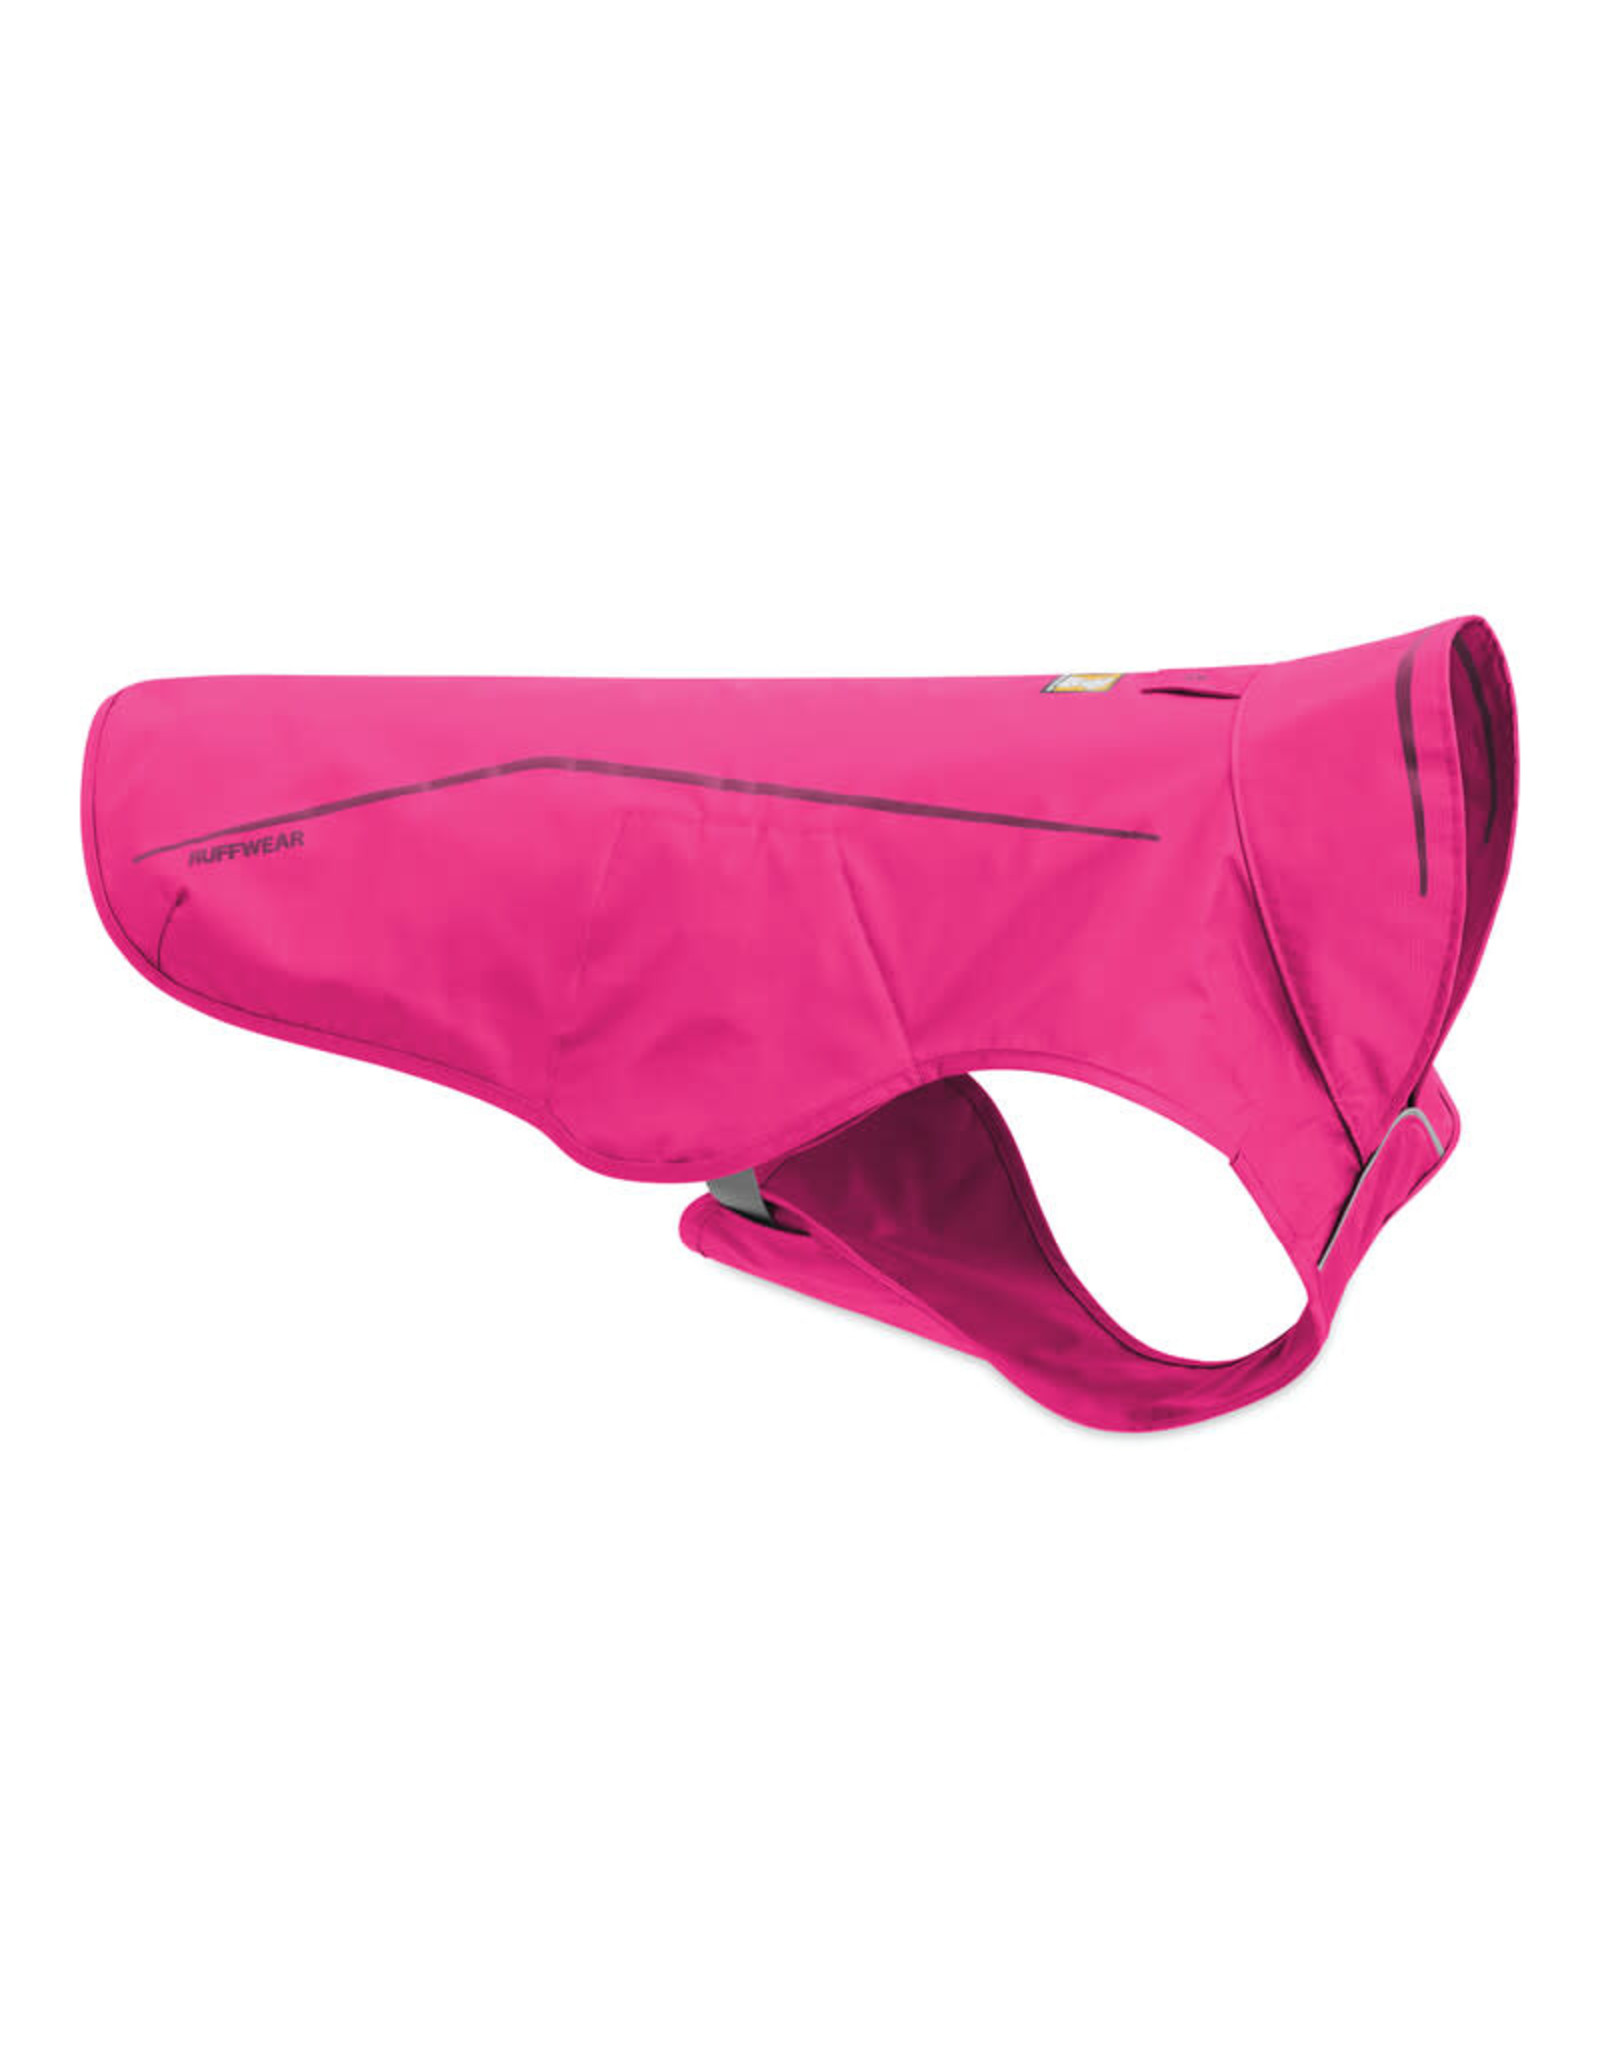 Ruffwear Sun Shower Rain Jacket: Alpenglow Pink, M